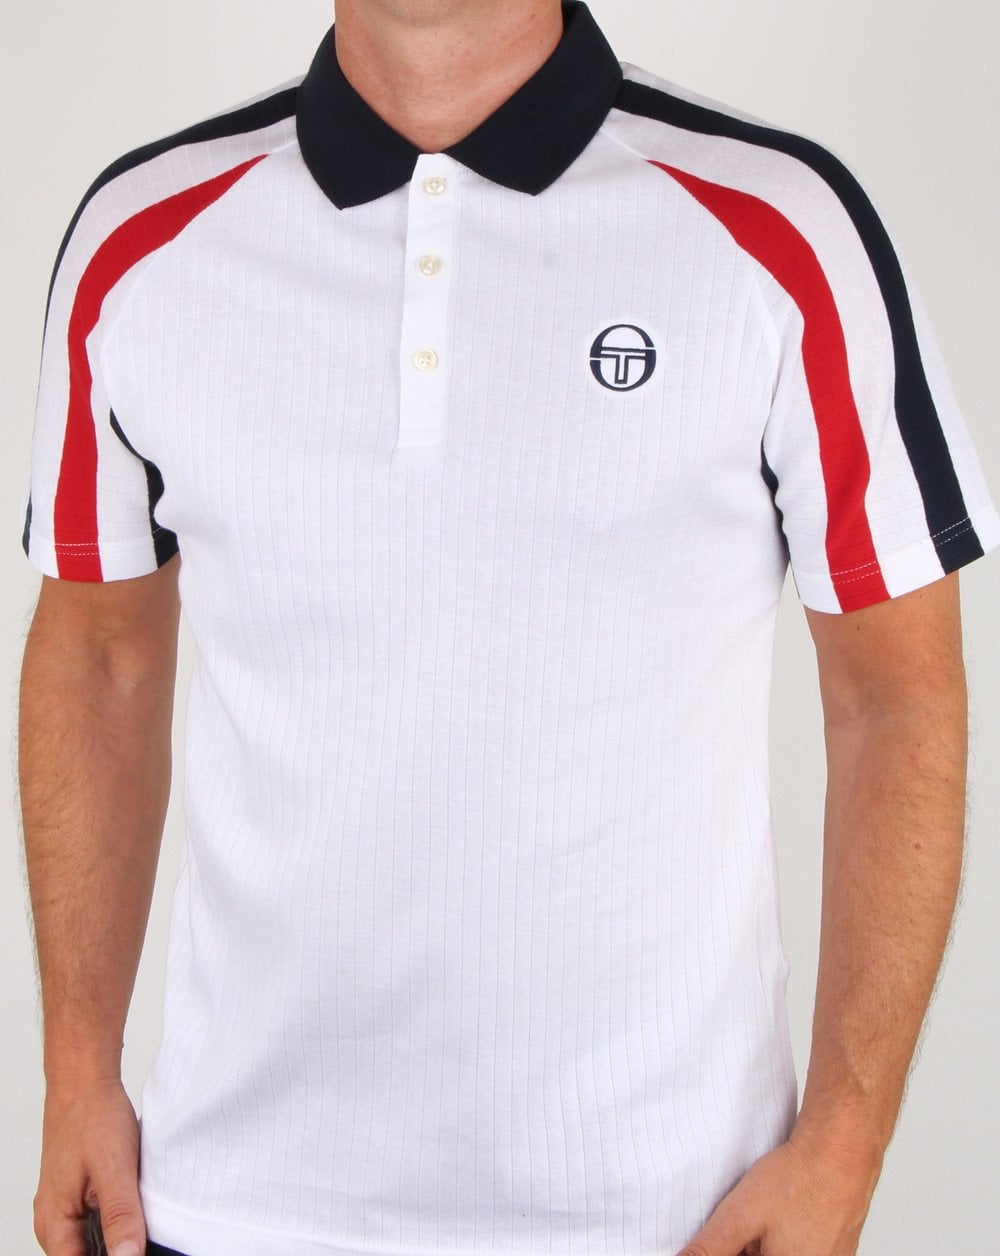 97b27d75 tacchini polo. Sergio Tacchini Blow Polo Shirt White/navy/red,Mens ...